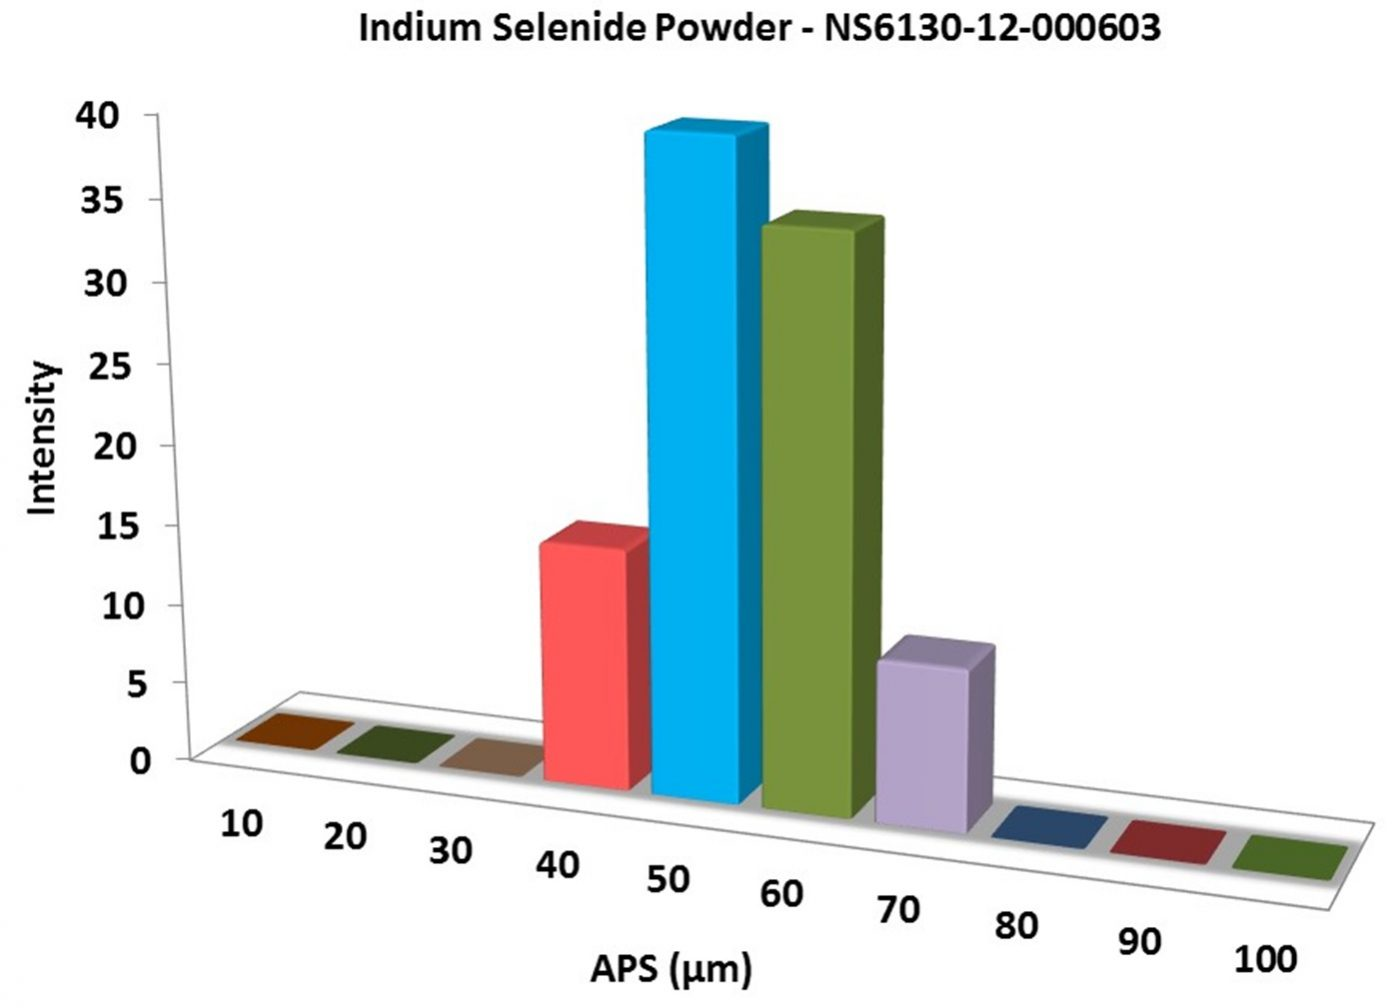 Particles Size Analysis - Indium Selenide Powder